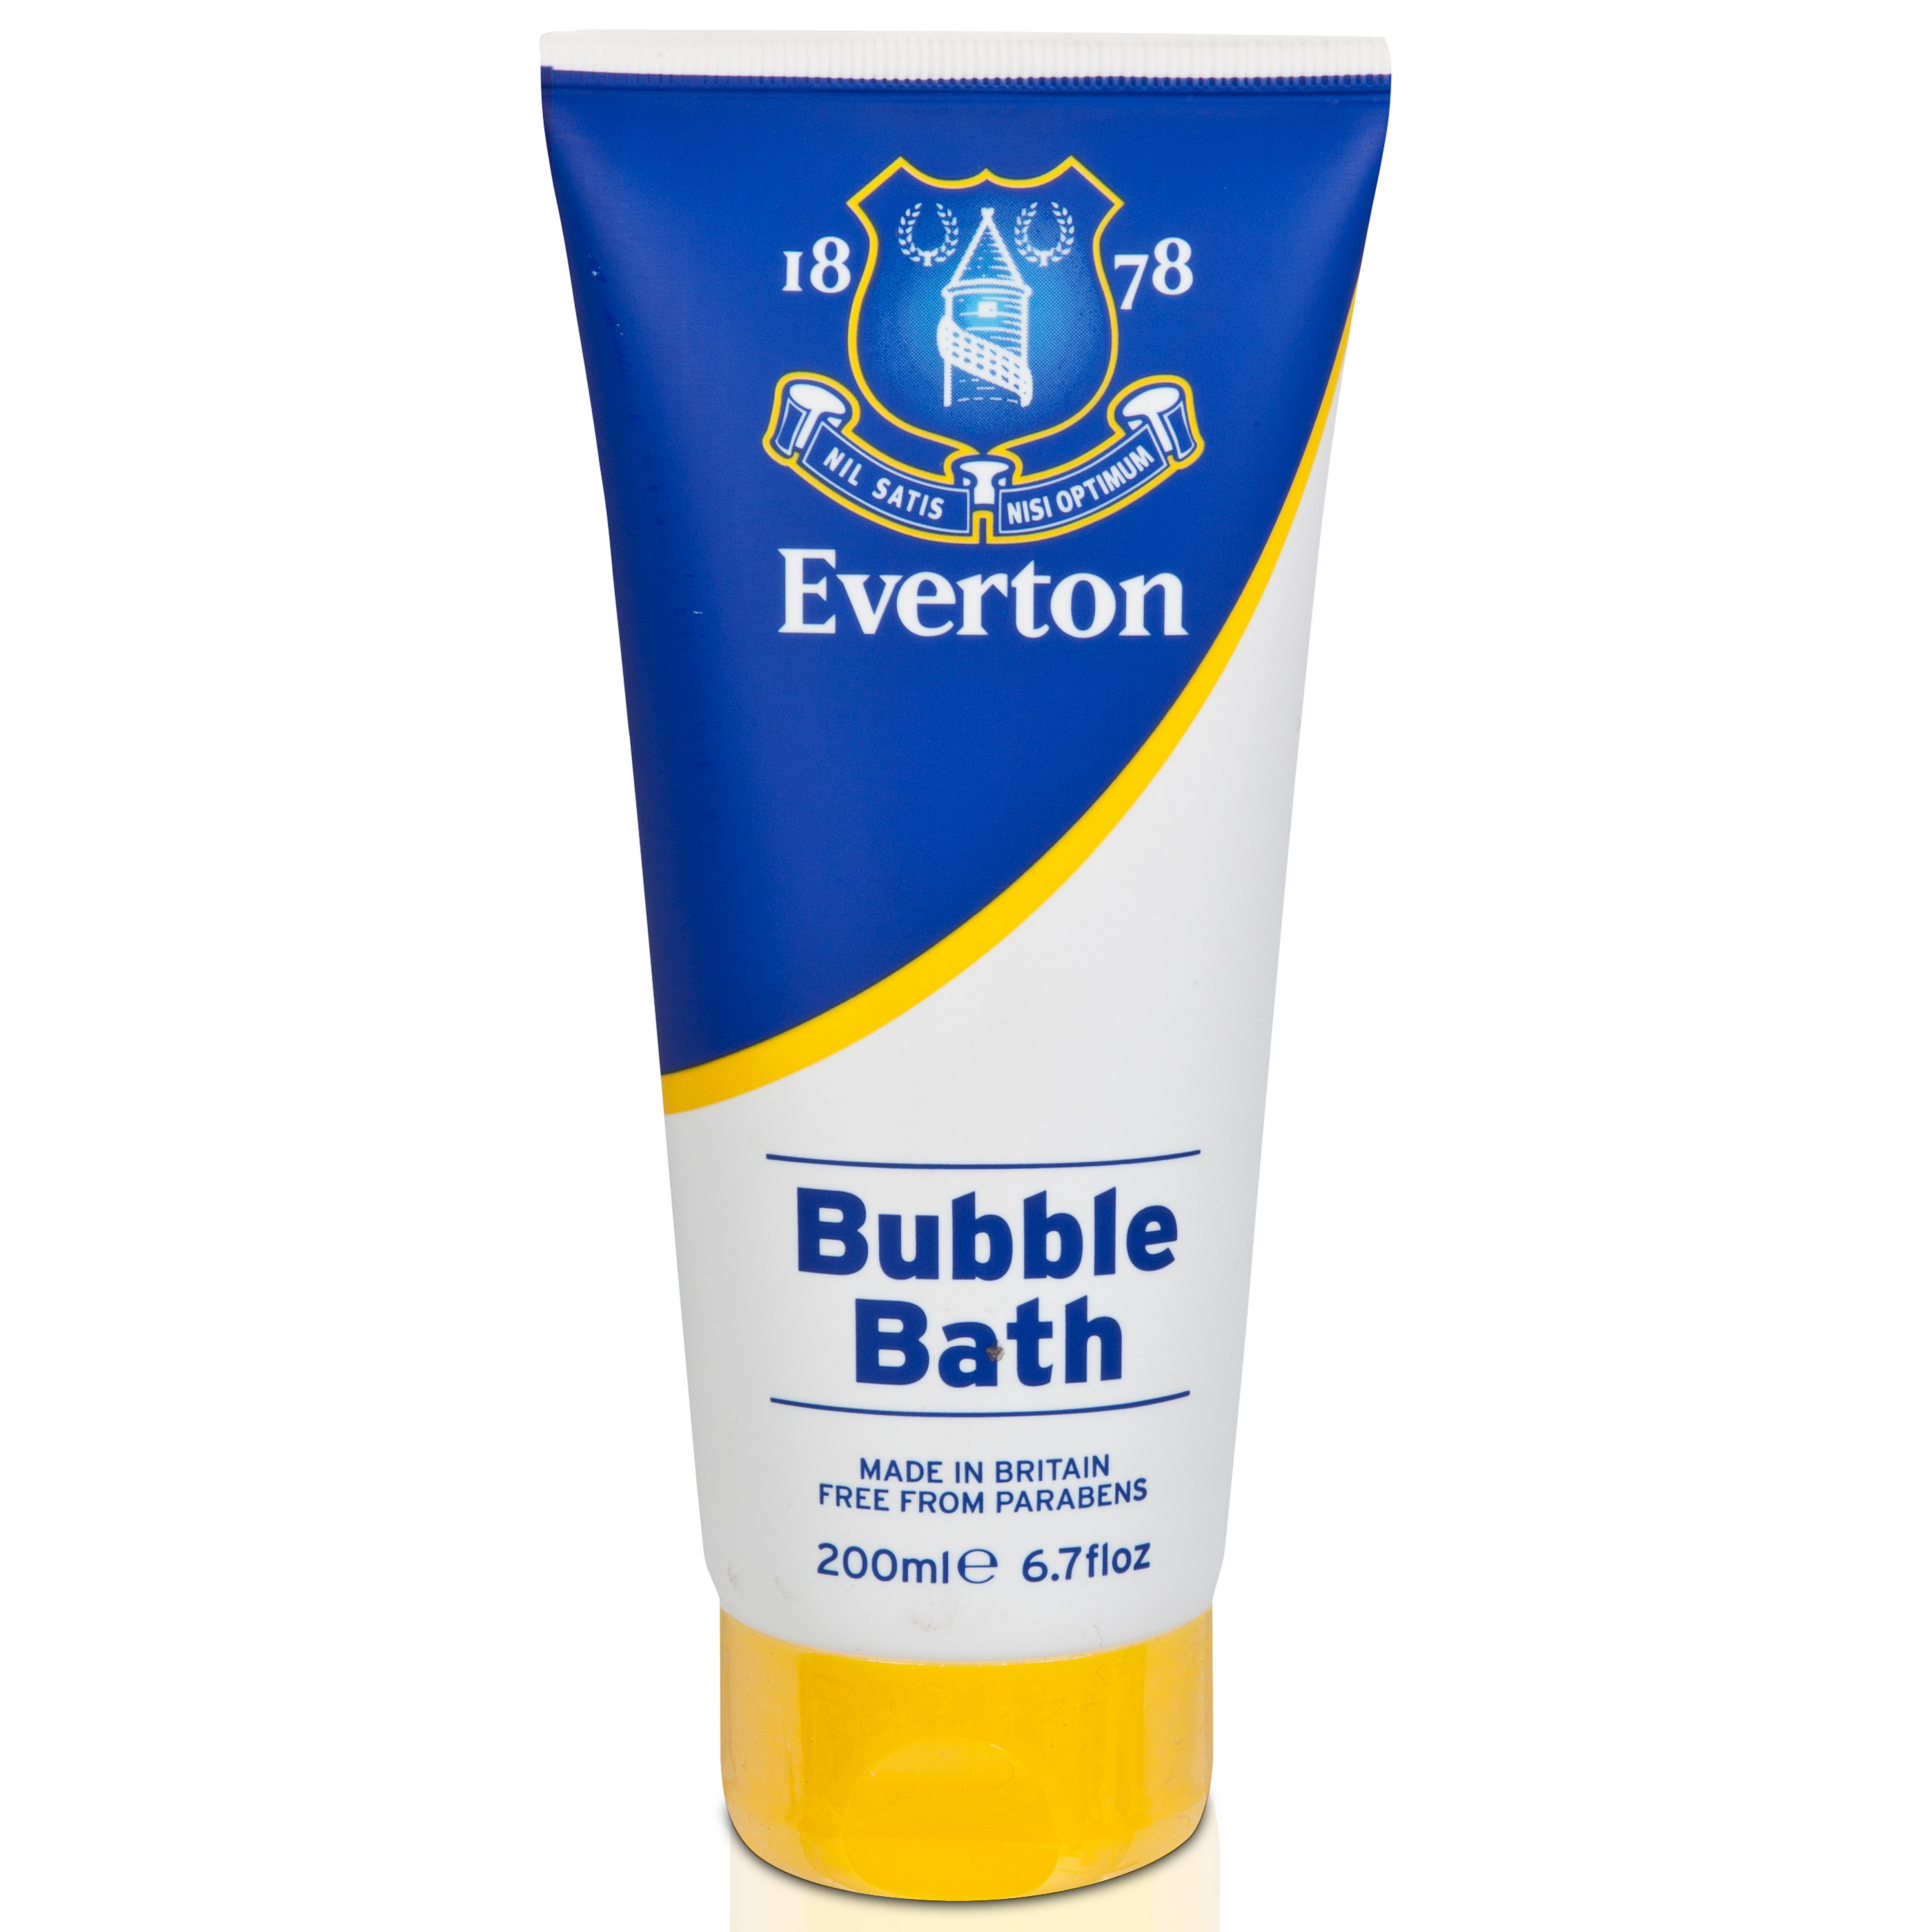 Everton Bubble Bath